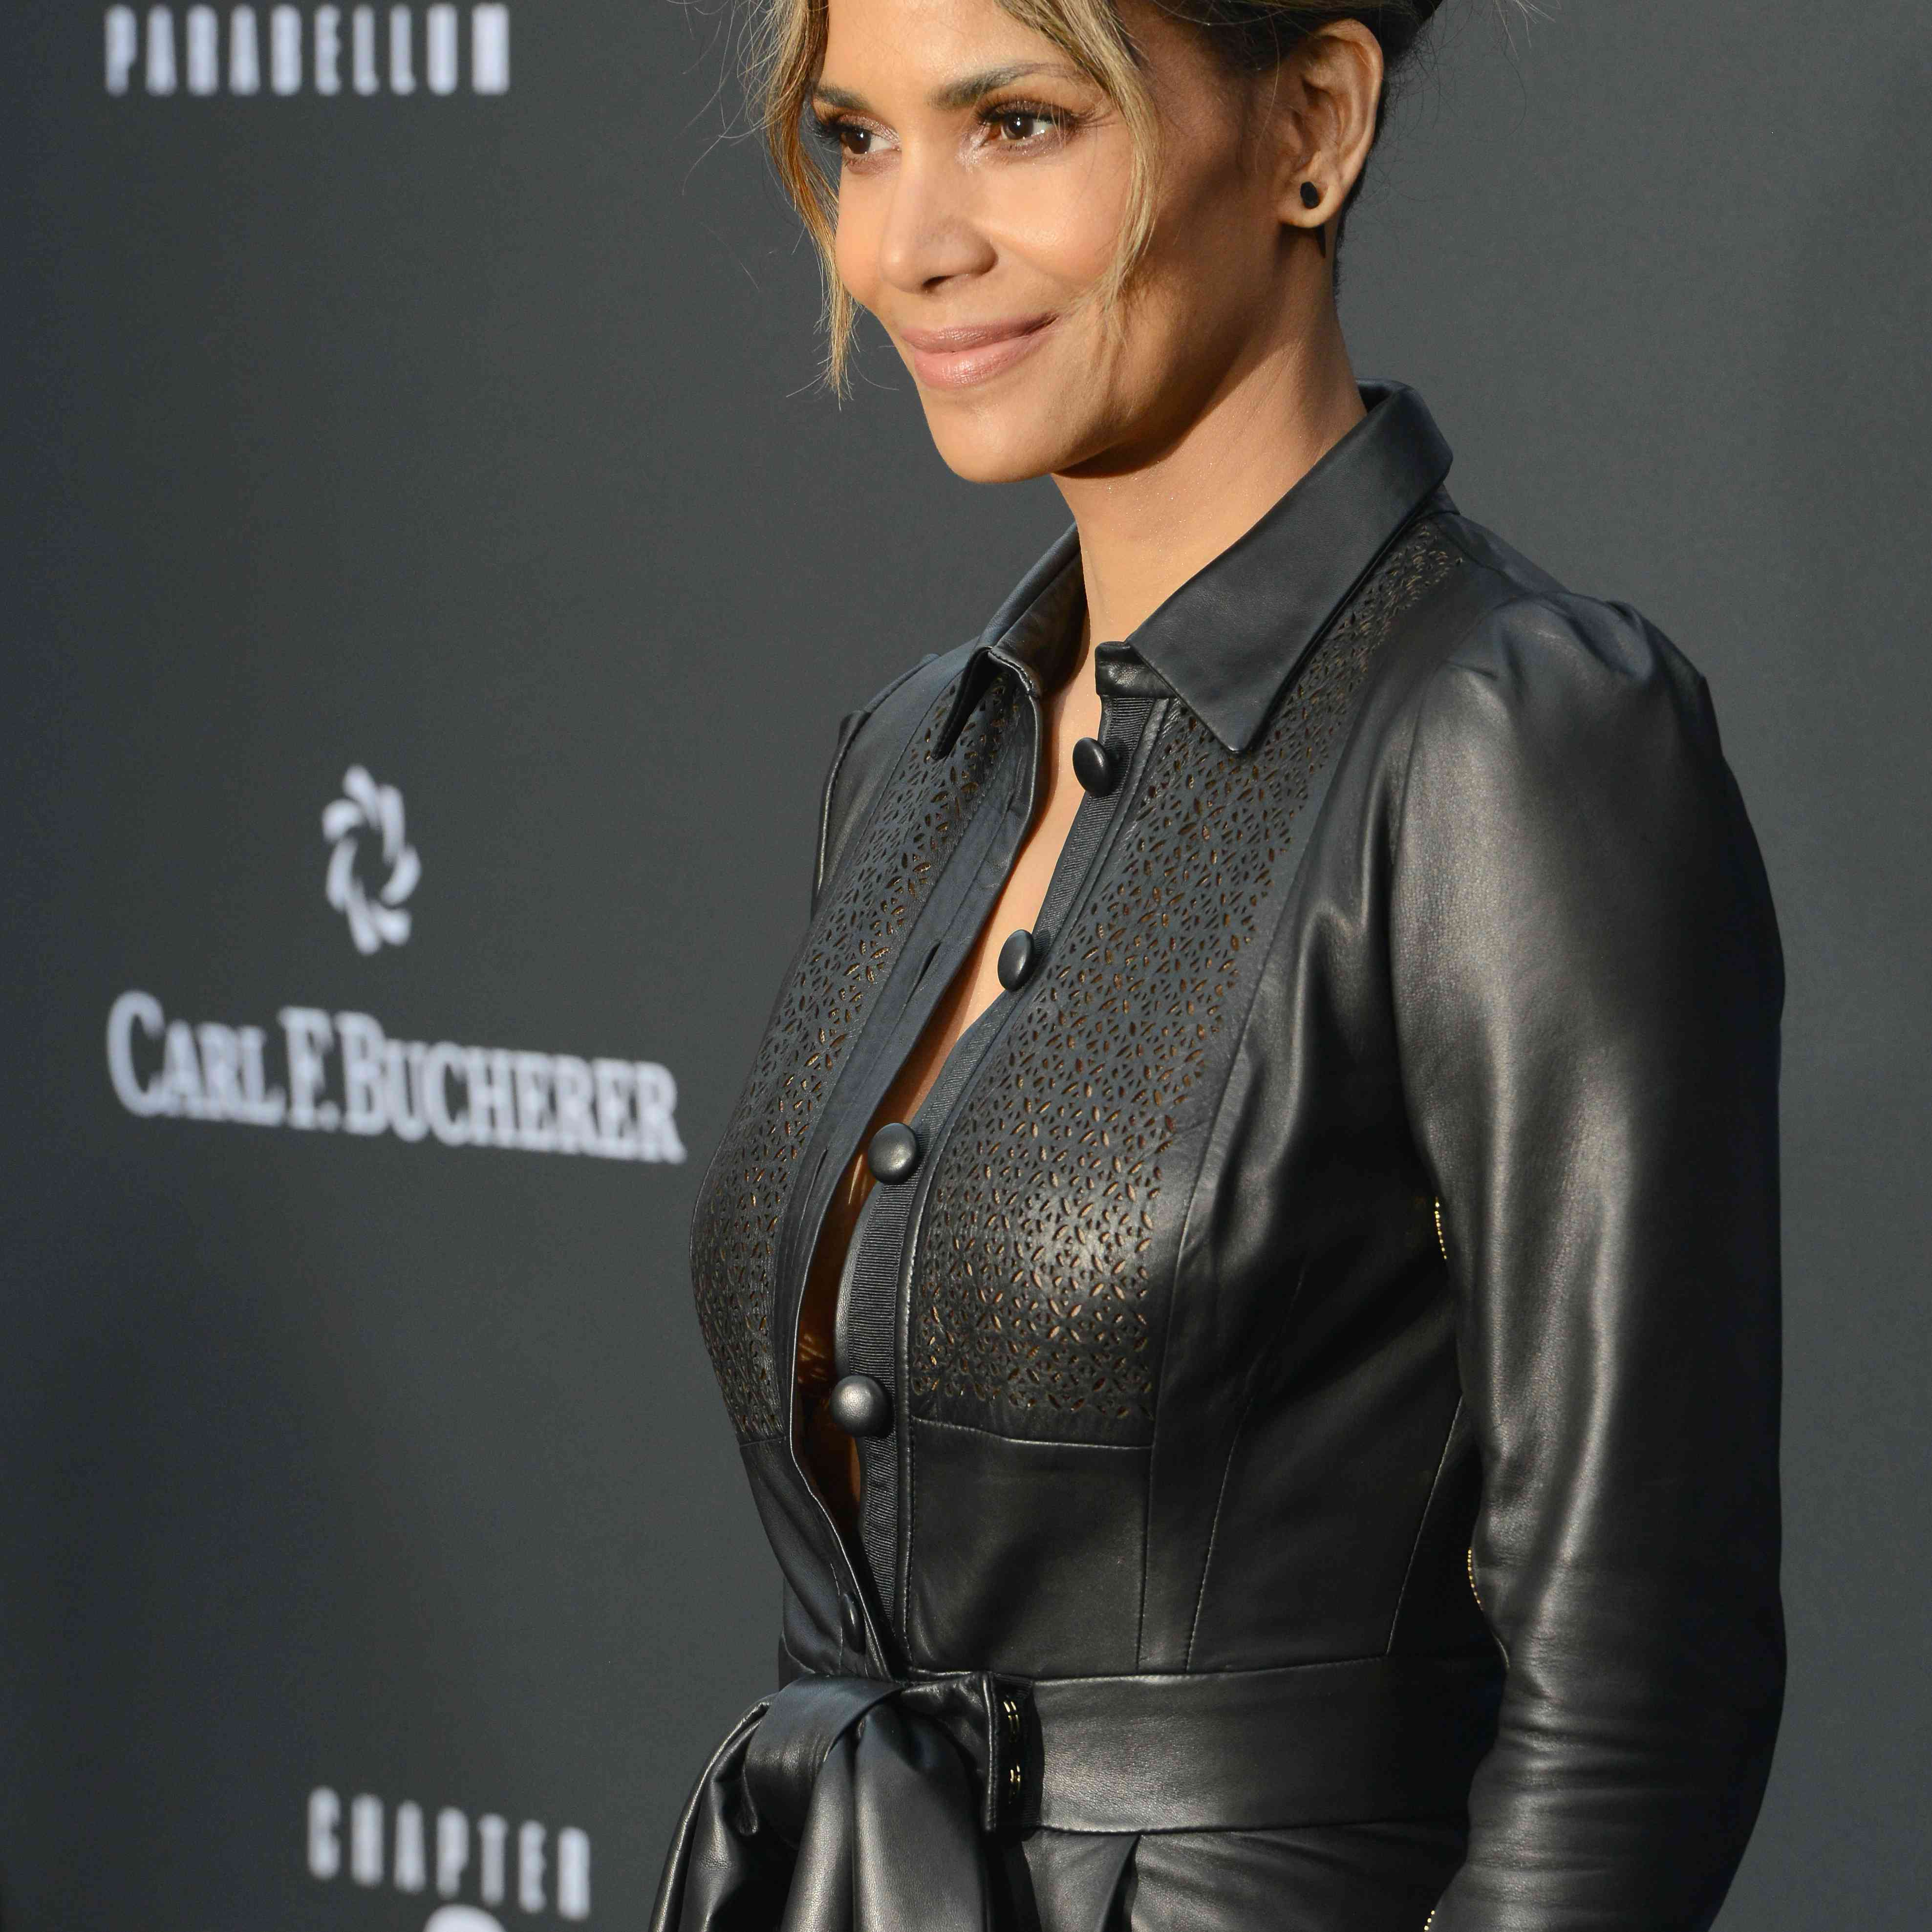 Halle Berry's messy updo